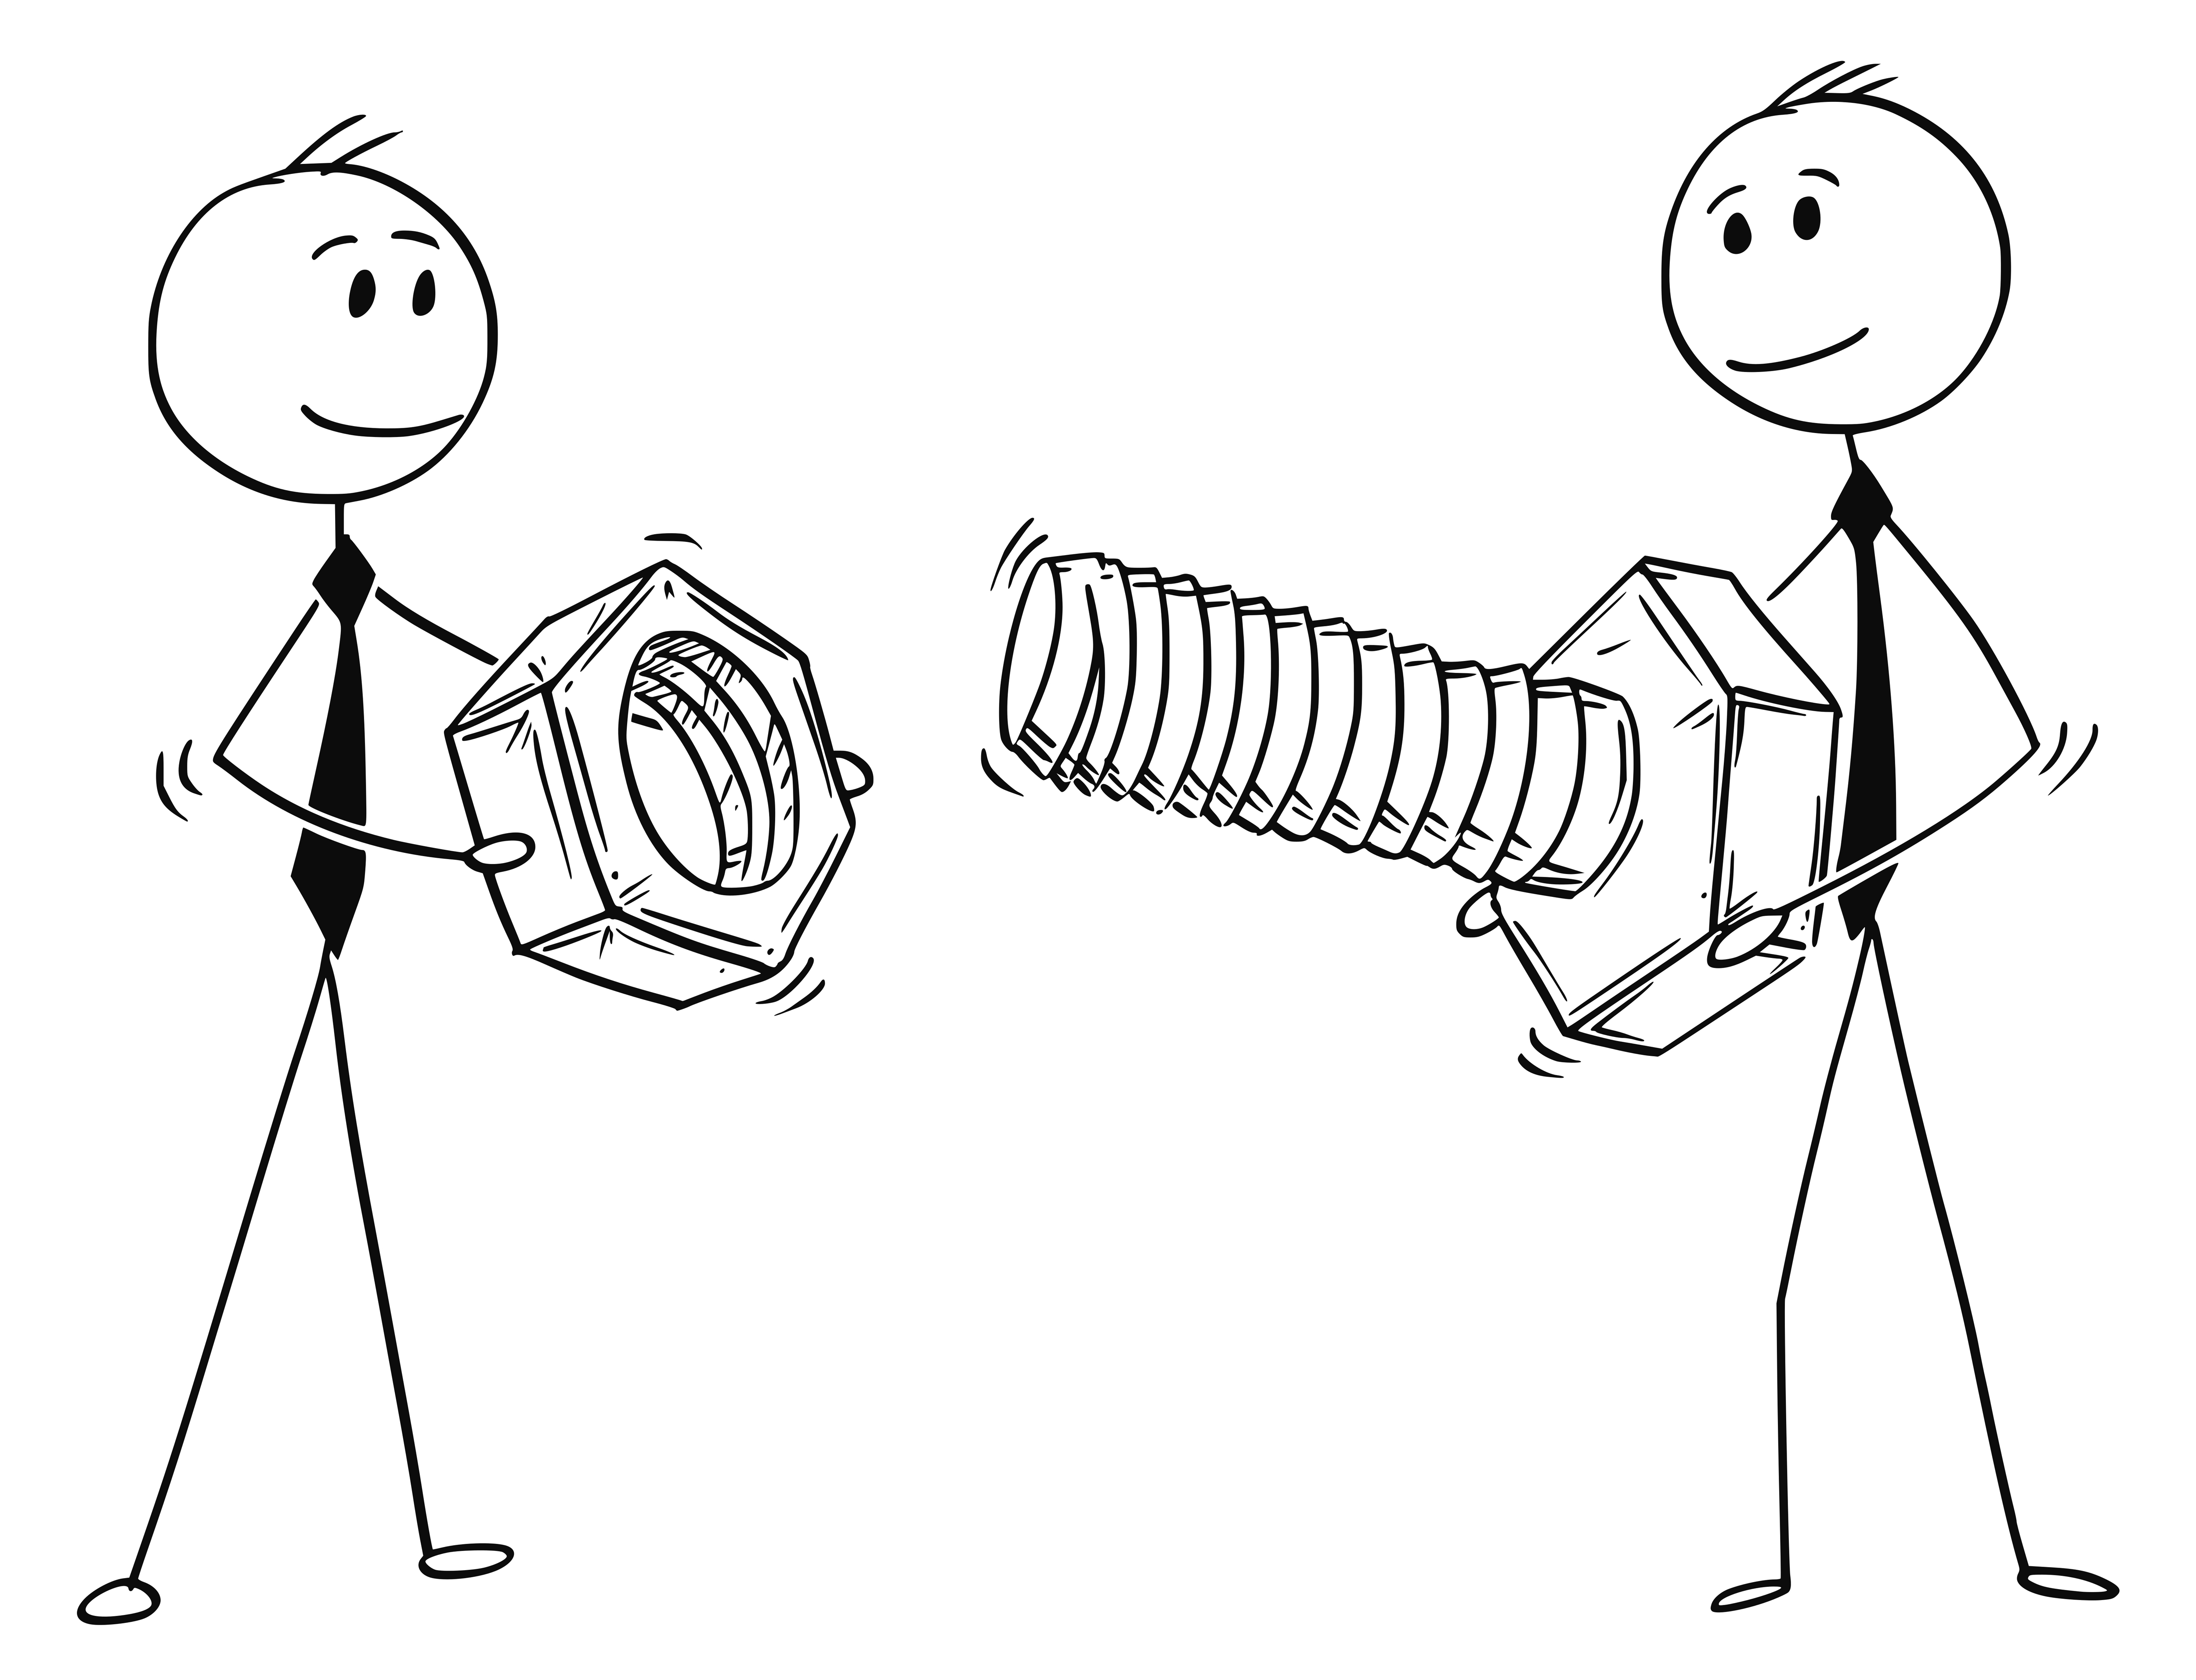 Cartoon of Two Businessmen Carrying Bolt and Nut as Problem Solution Metaphor